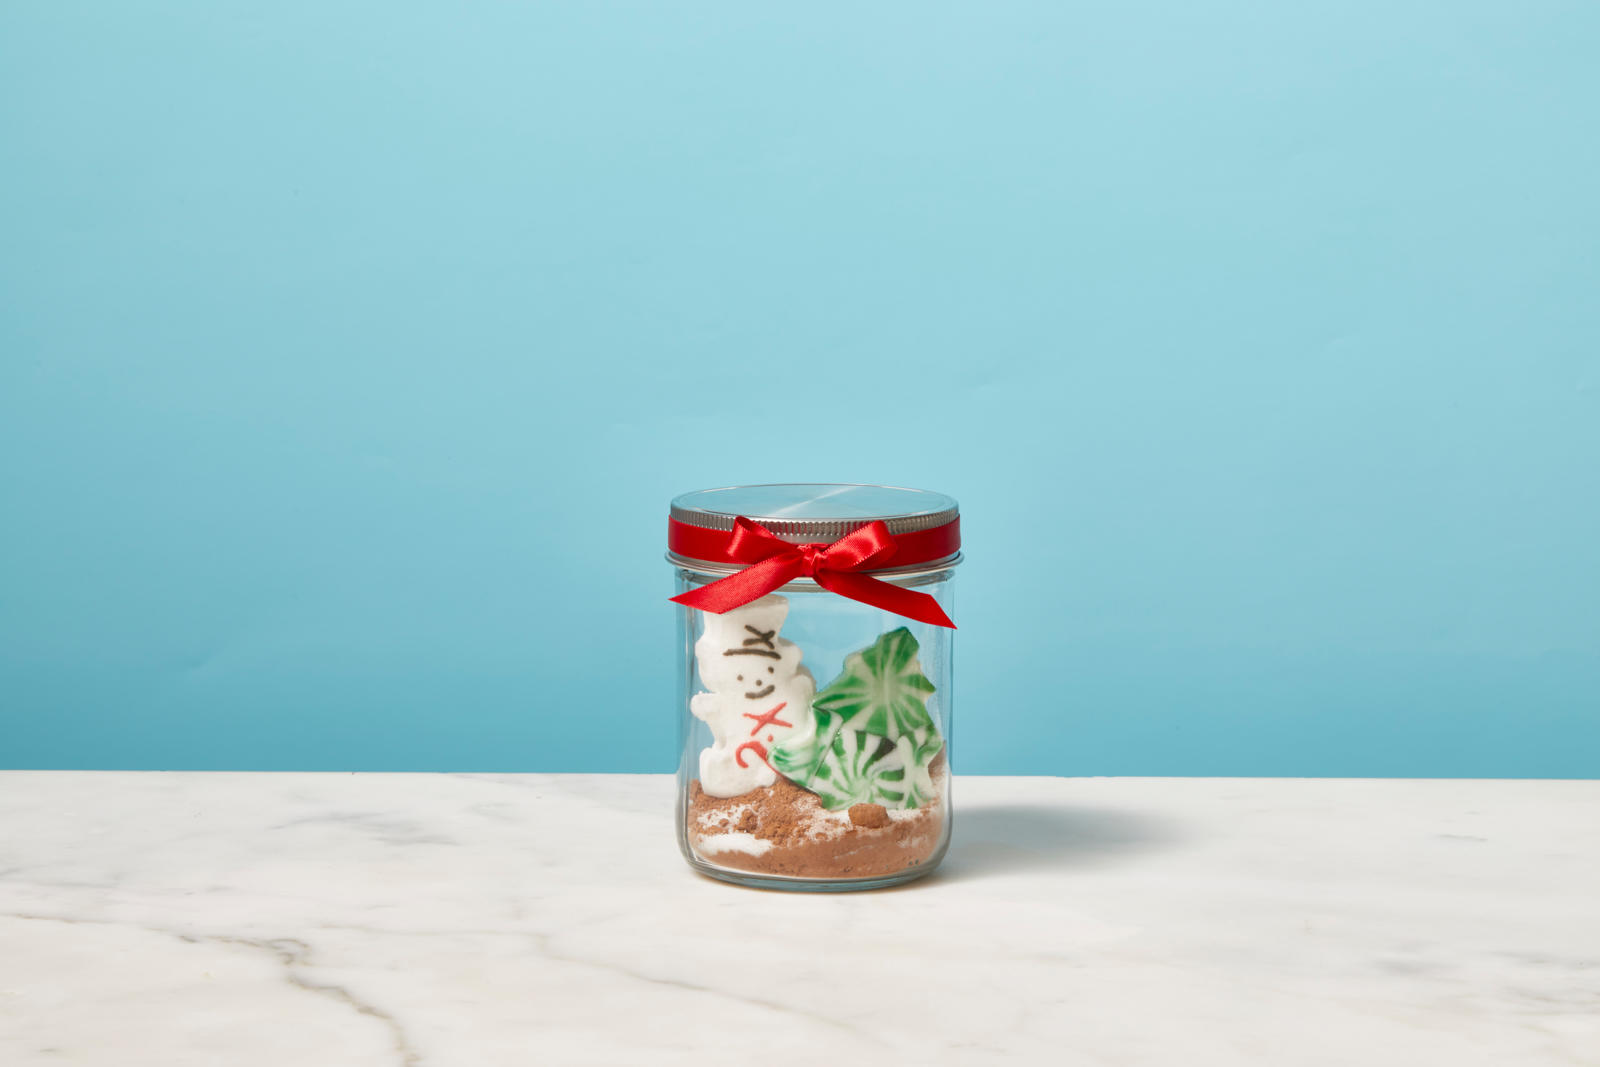 How to DIY a Mason Jar Hot Chocolate Gift Using Peeps